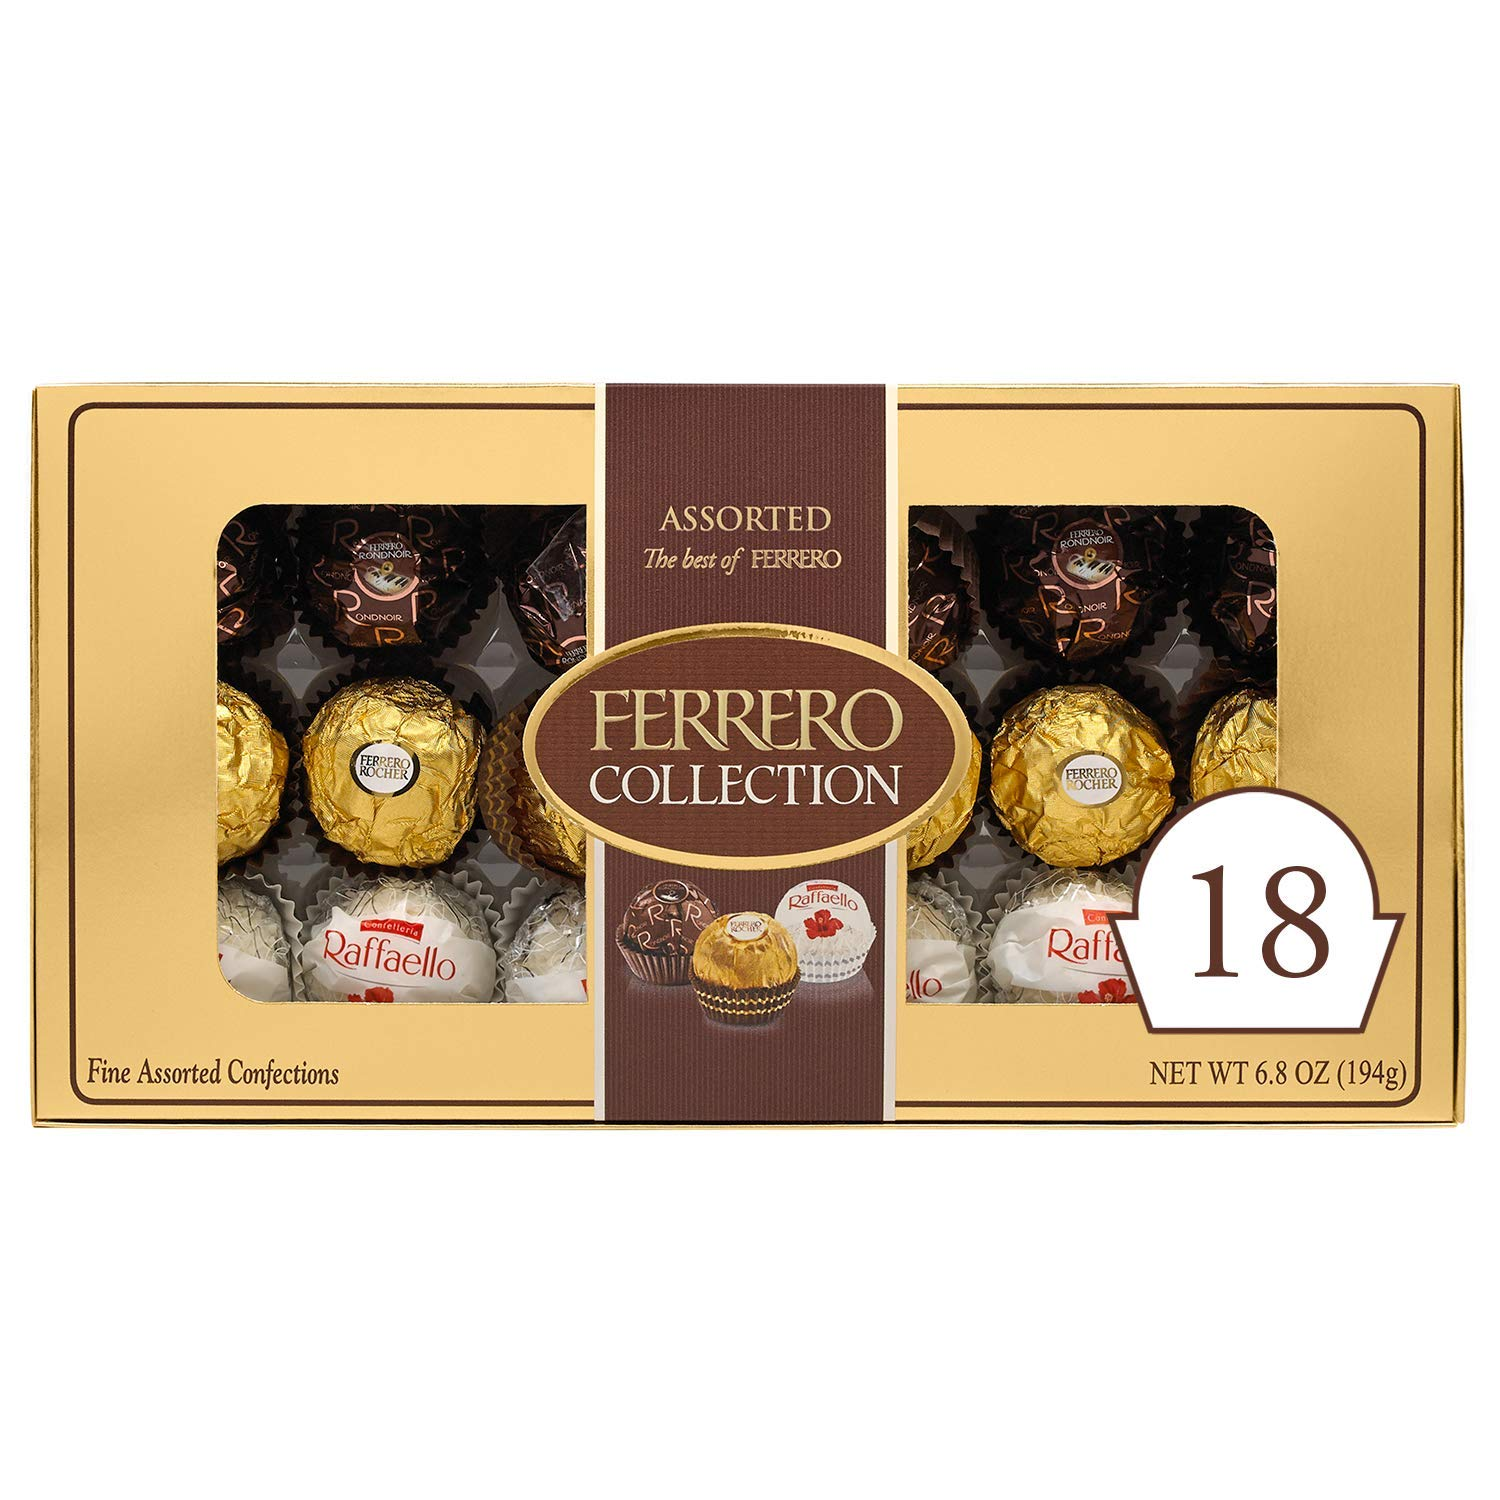 Ferrero Rocher Collection, Fine Hazelnut Milk Chocolates, 18 Count Gift Box, Assorted Coconut Candy and Chocolates, 6.8 oz, Perfect Easter Egg and Basket Stuffers